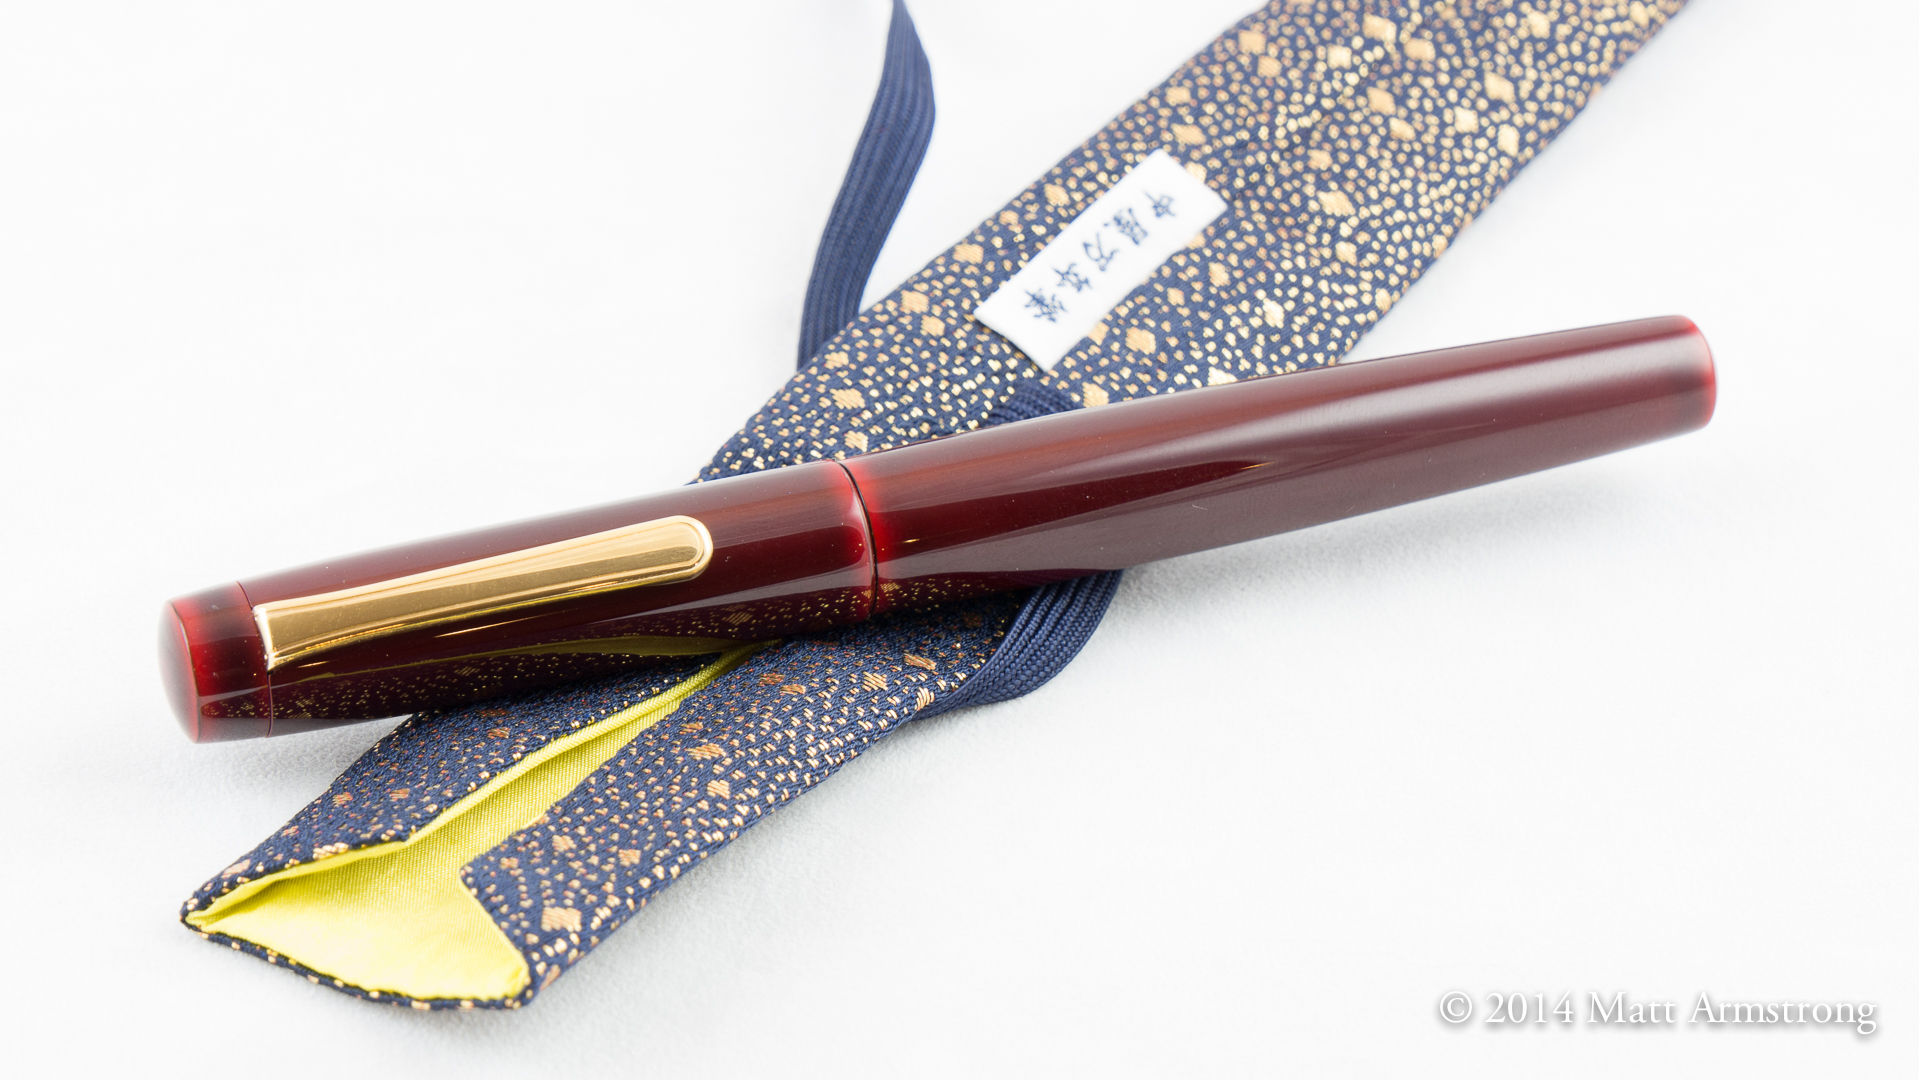 Pen Review: Nakaya Neo Standard